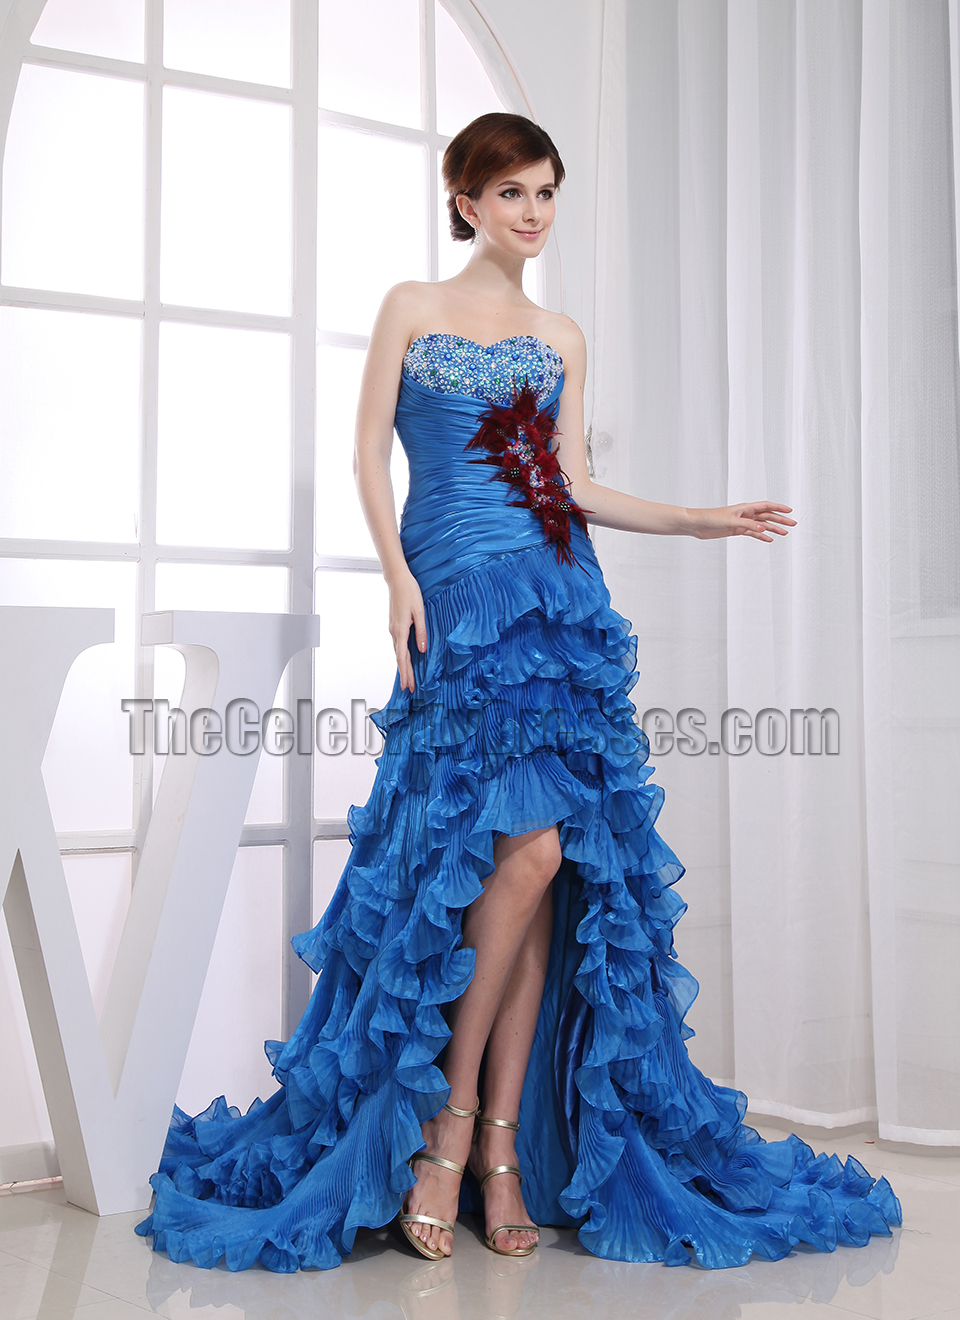 Glamorous Blue Strapless High Low Prom Dress Formal ... - photo#8